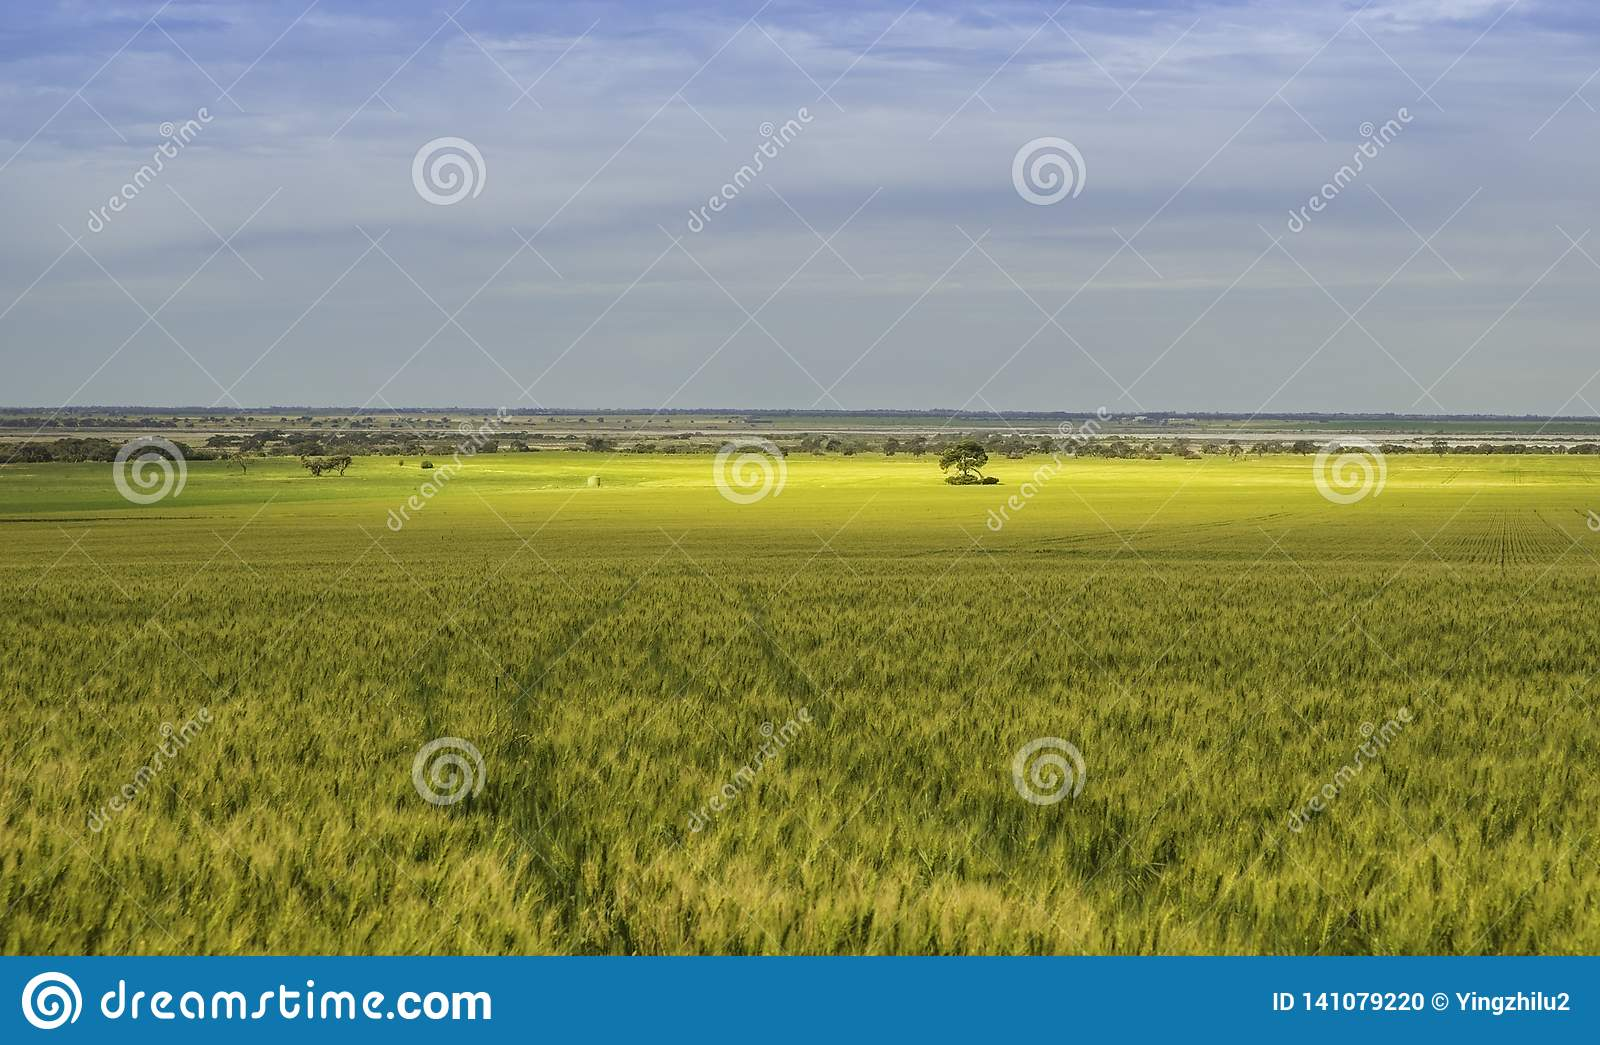 Cornfield under cloudy sky with gold colour